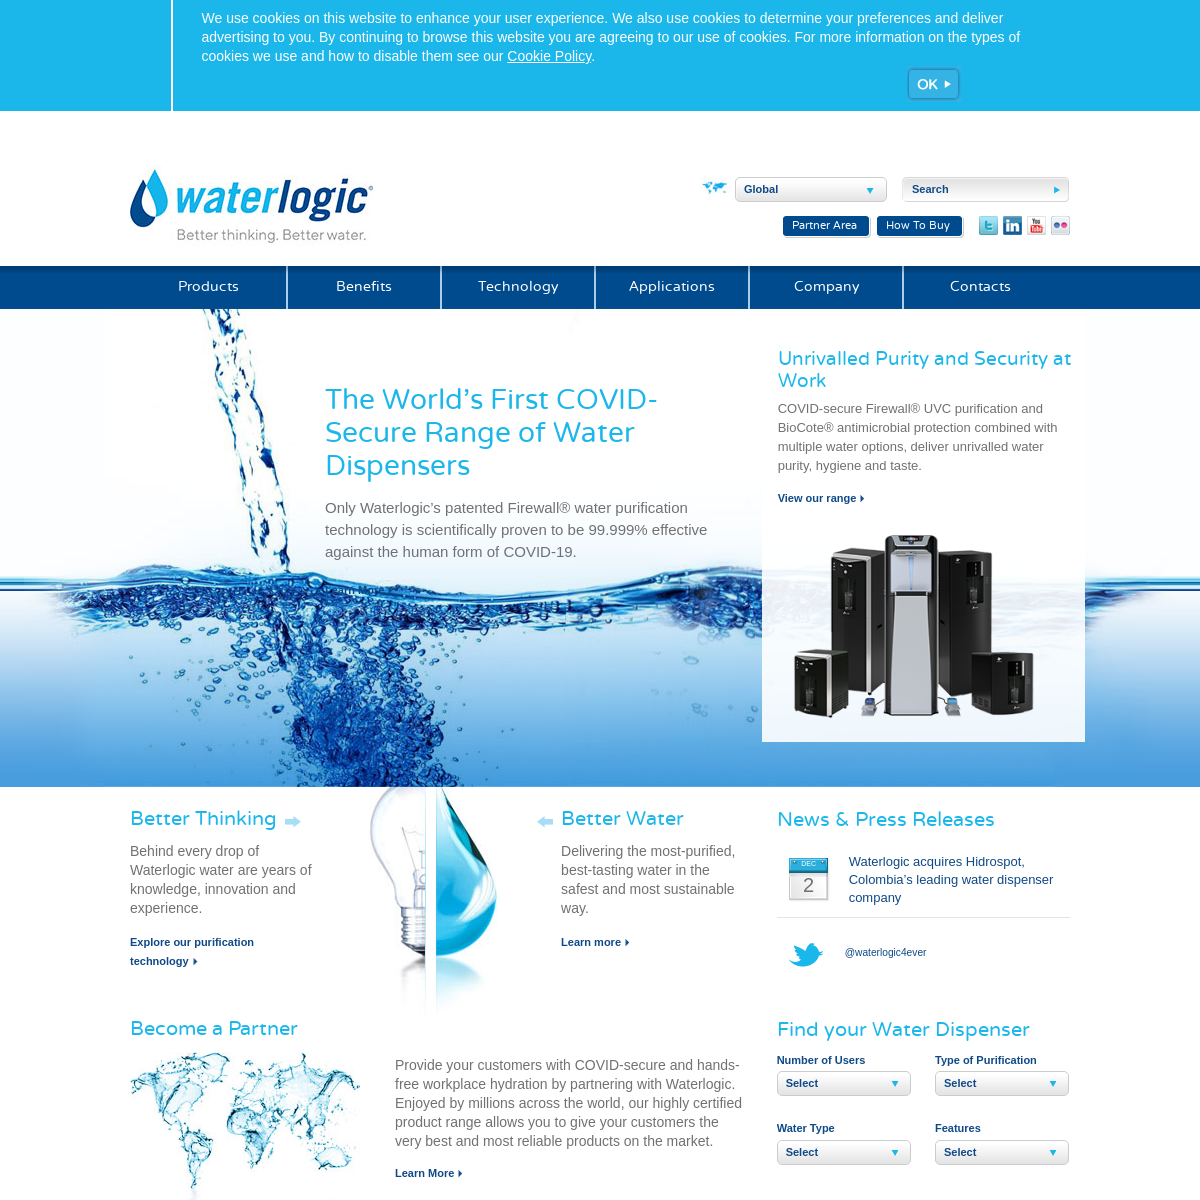 Water Coolers and Dispensers for Office and Home - Waterlogic